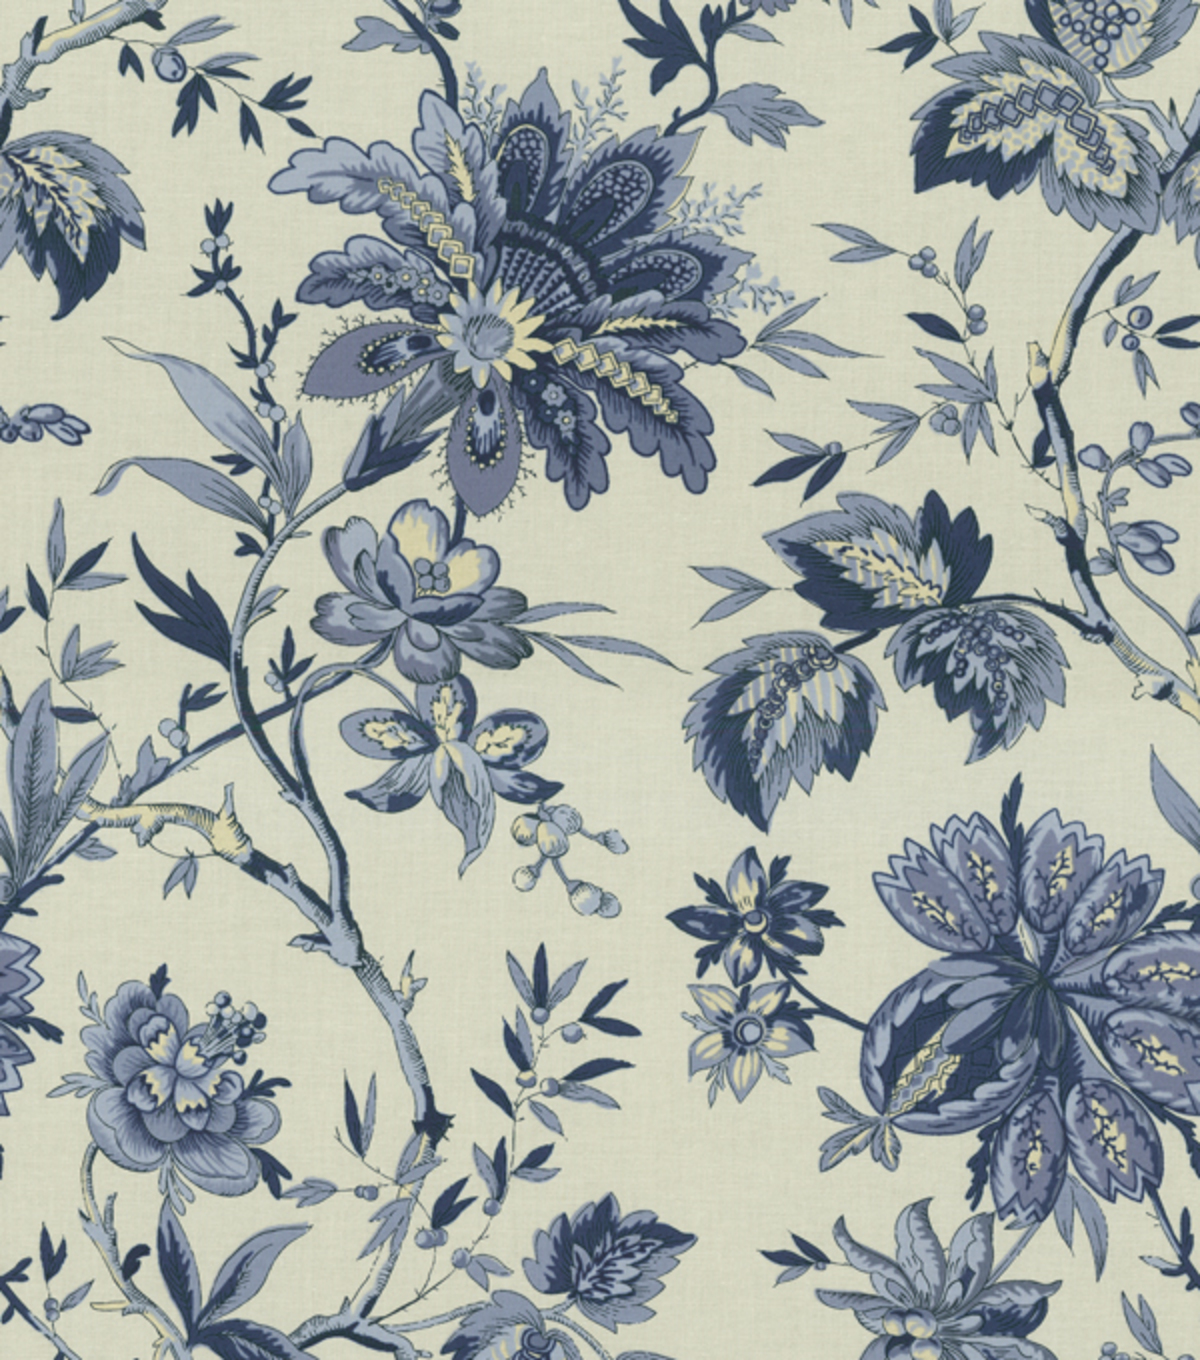 Waverly Multi Purpose Decor Fabric 56u0022 Felicite Indigo